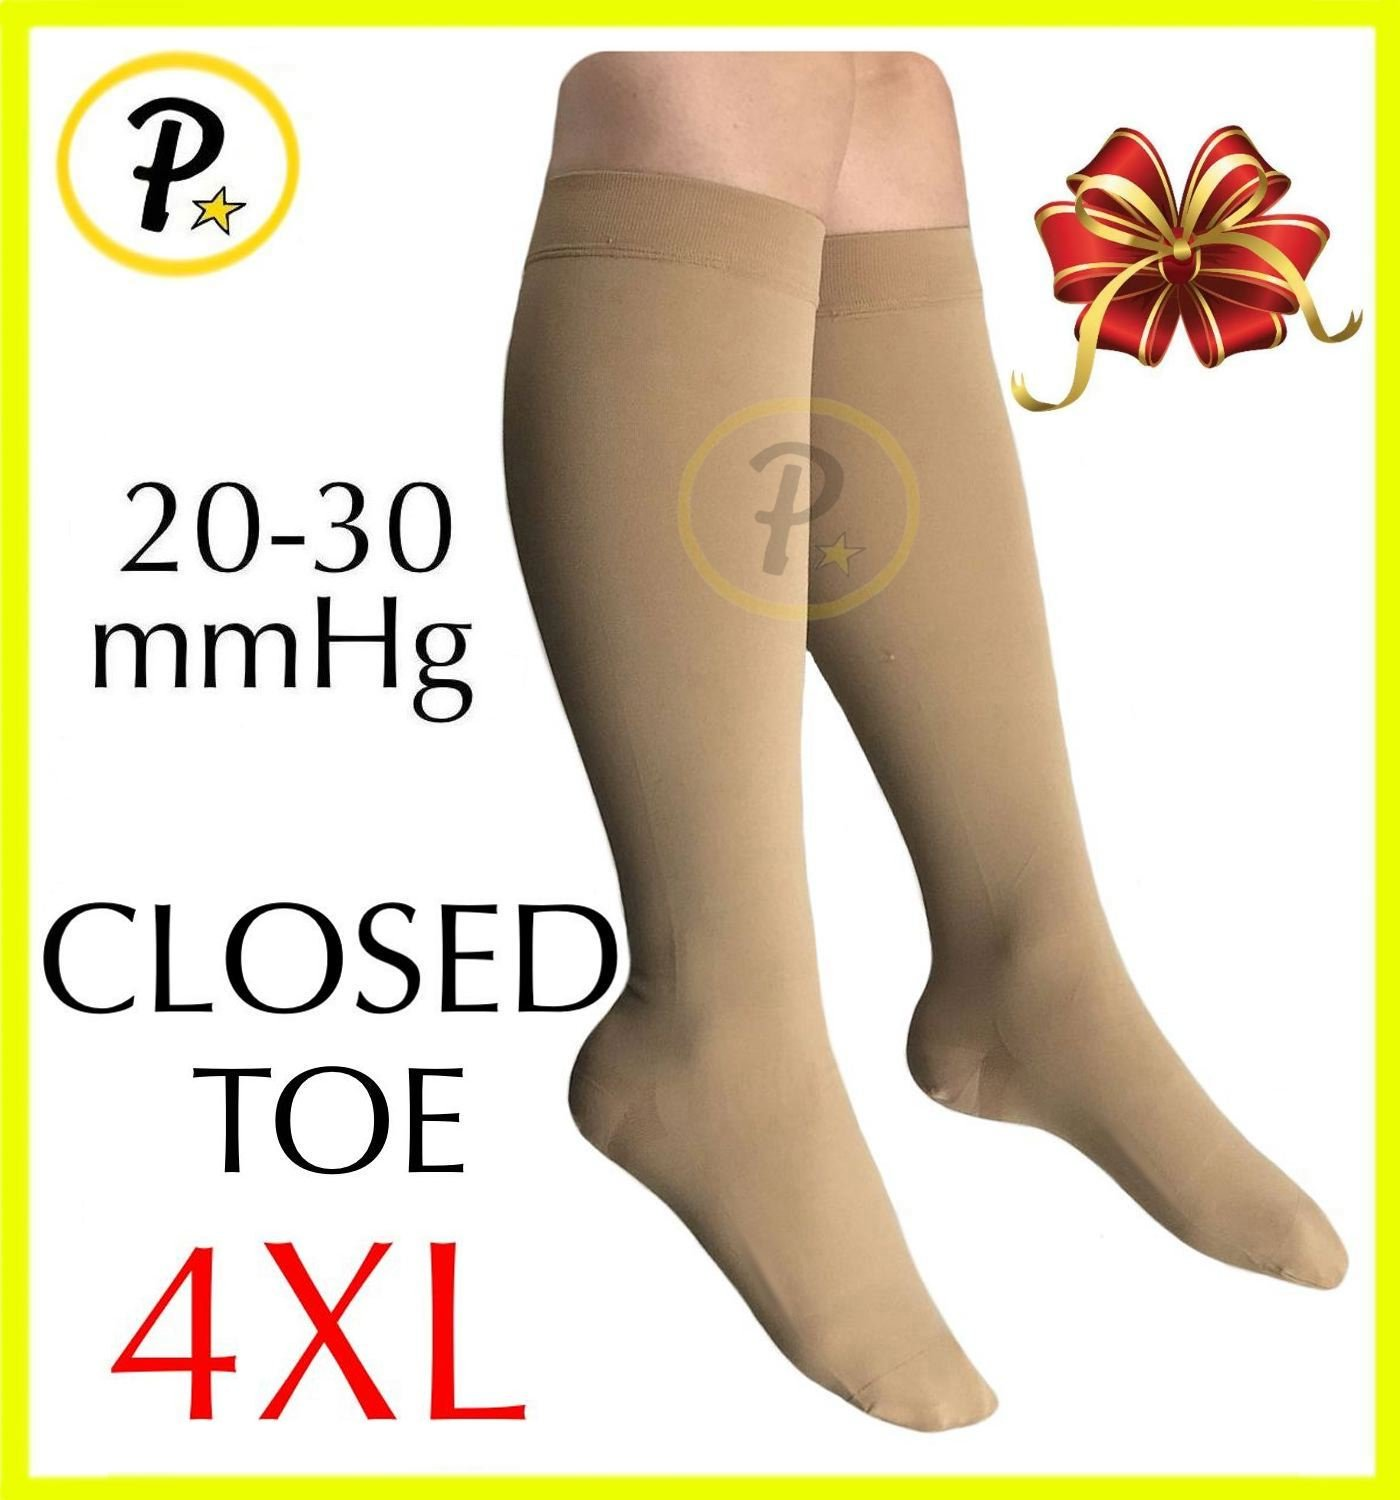 Presadee Closed Toe (BIG & TALL SUPER SIZE) Traditional 20-30 mmHg Compression Grade Swelling Veins Ankle Calf Leg Sock Support (4XL, Beige) by Presadee